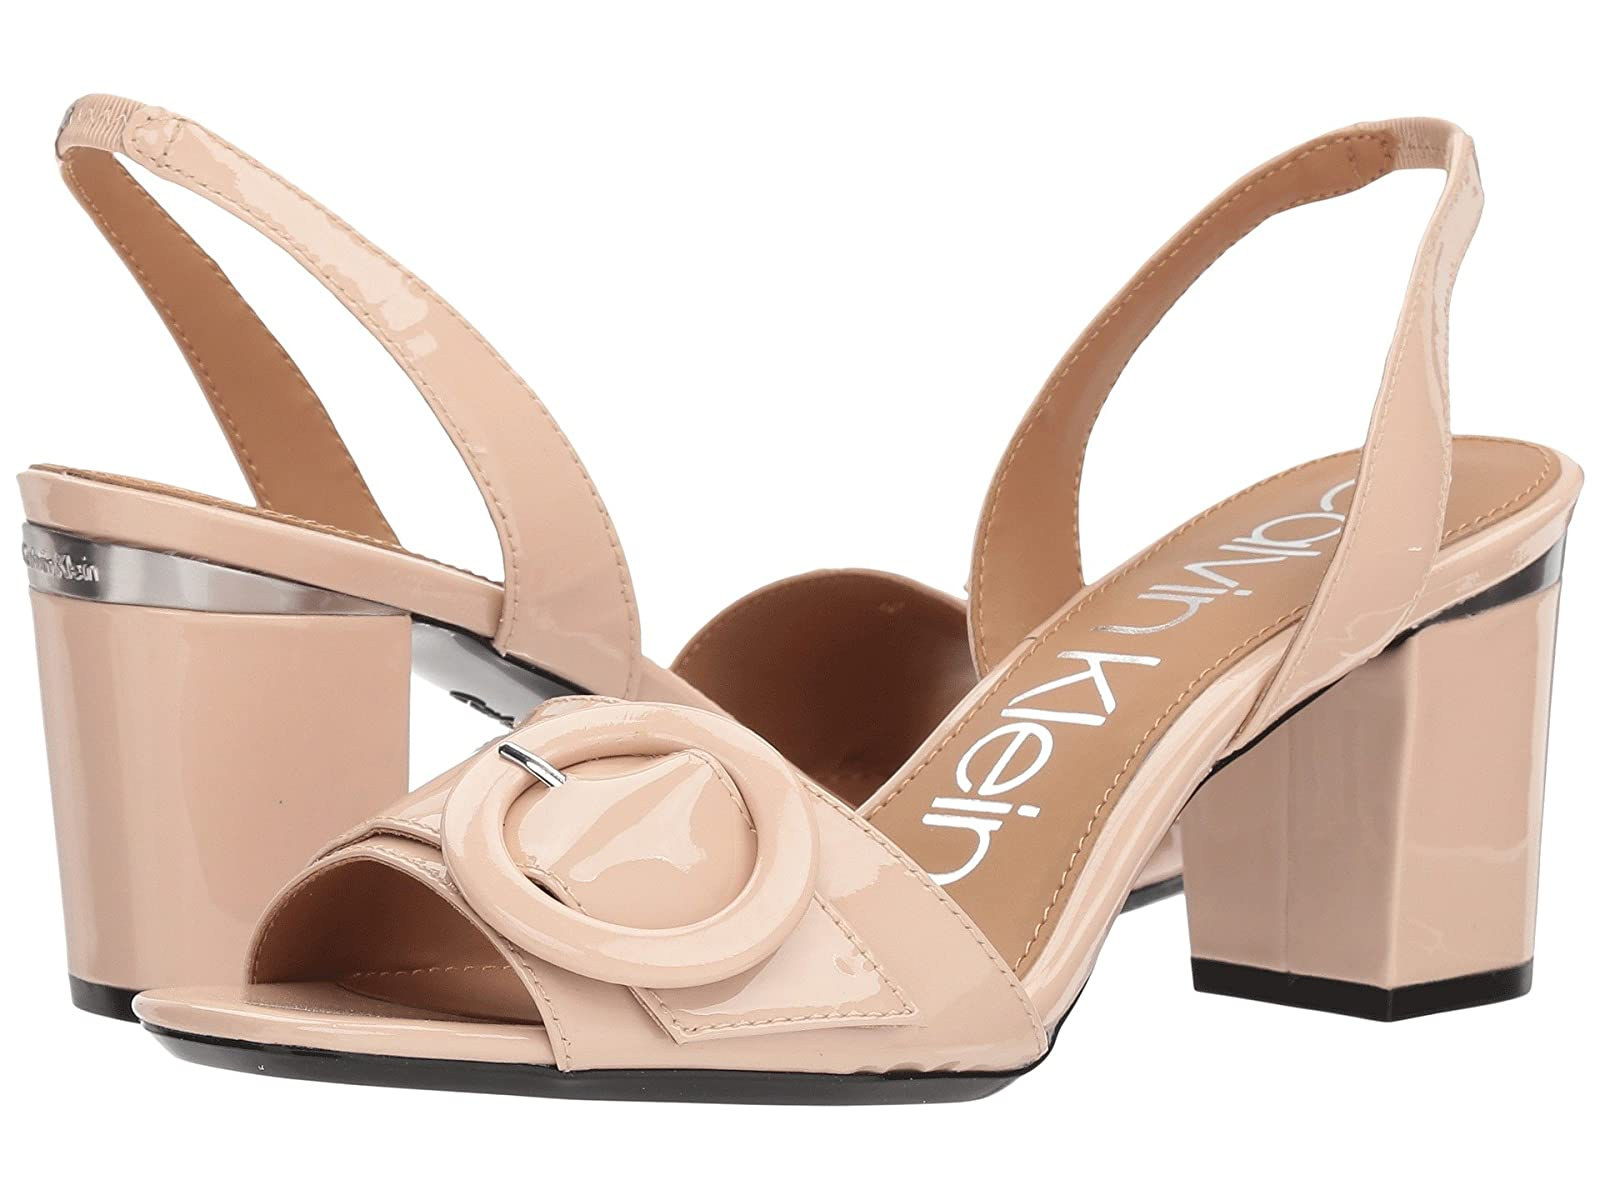 Calvin Klein ClaudiaCheap and distinctive eye-catching shoes